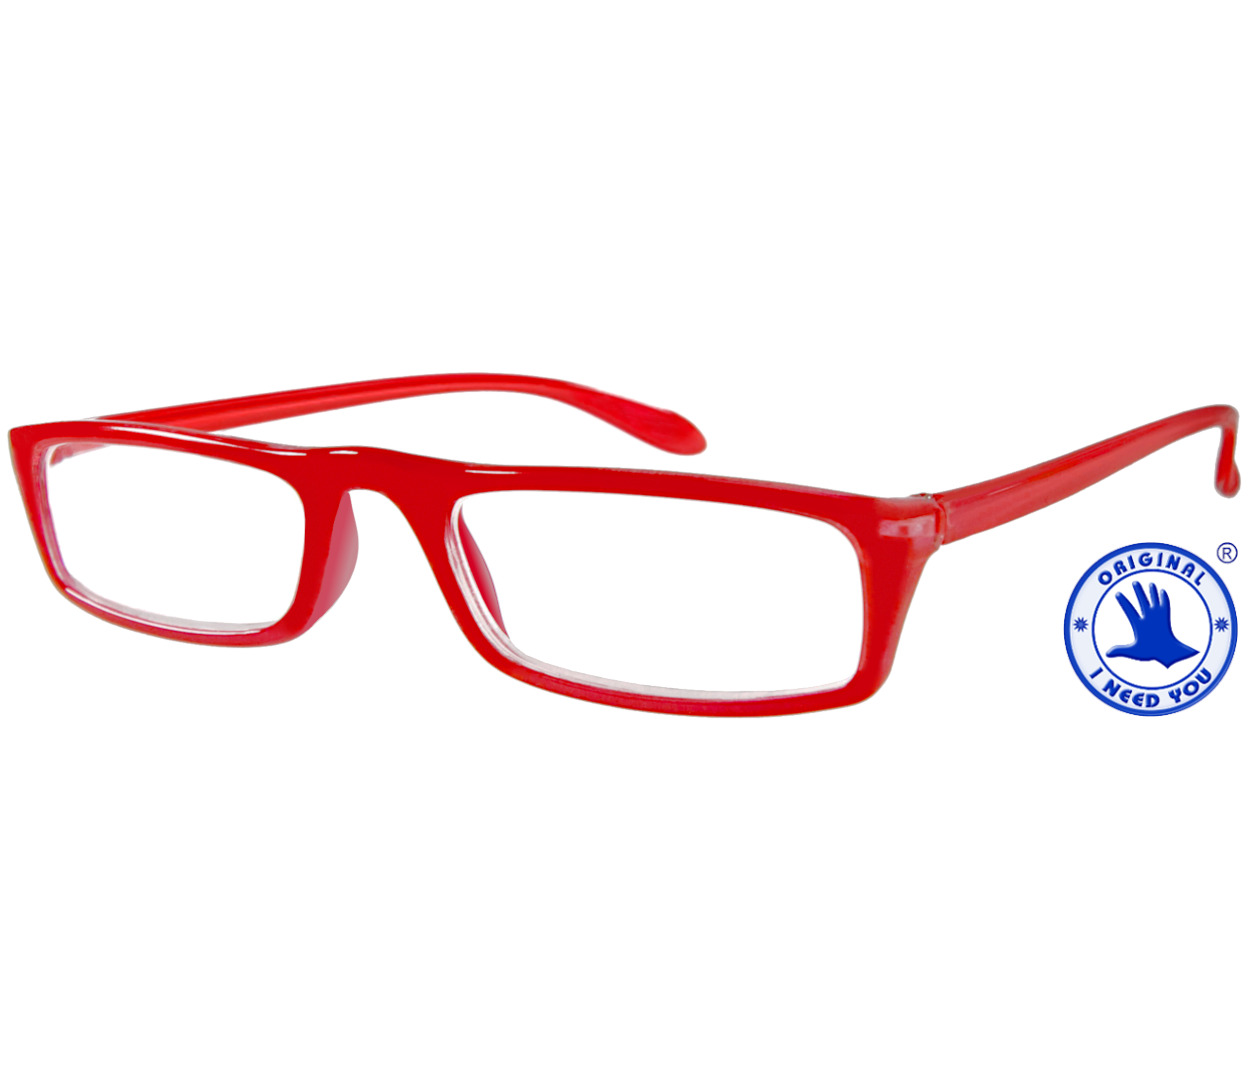 Main Image (Angle) - Florida (Red) Classic Reading Glasses